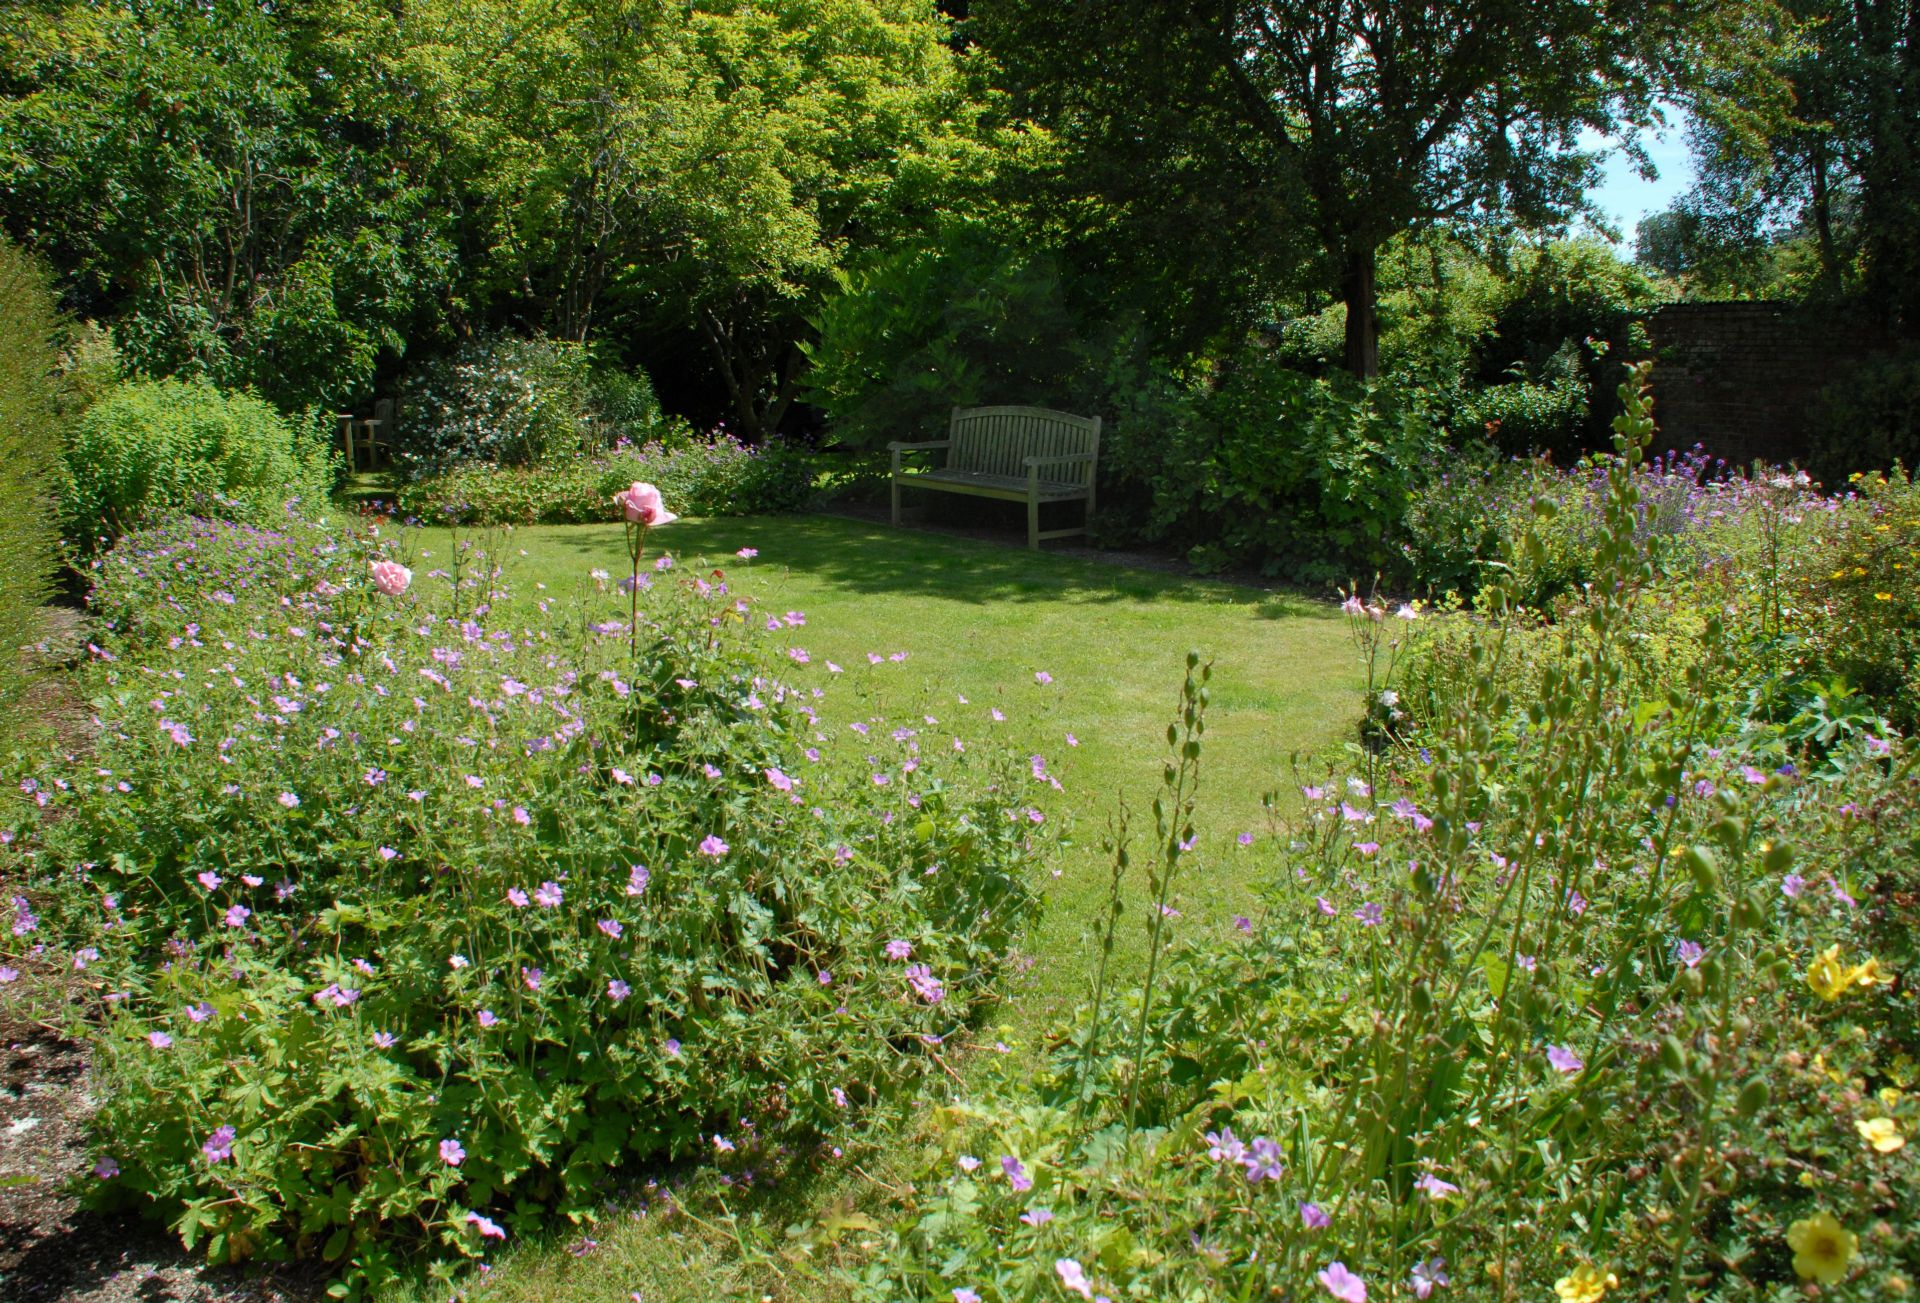 Another view of the pretty cottage garden